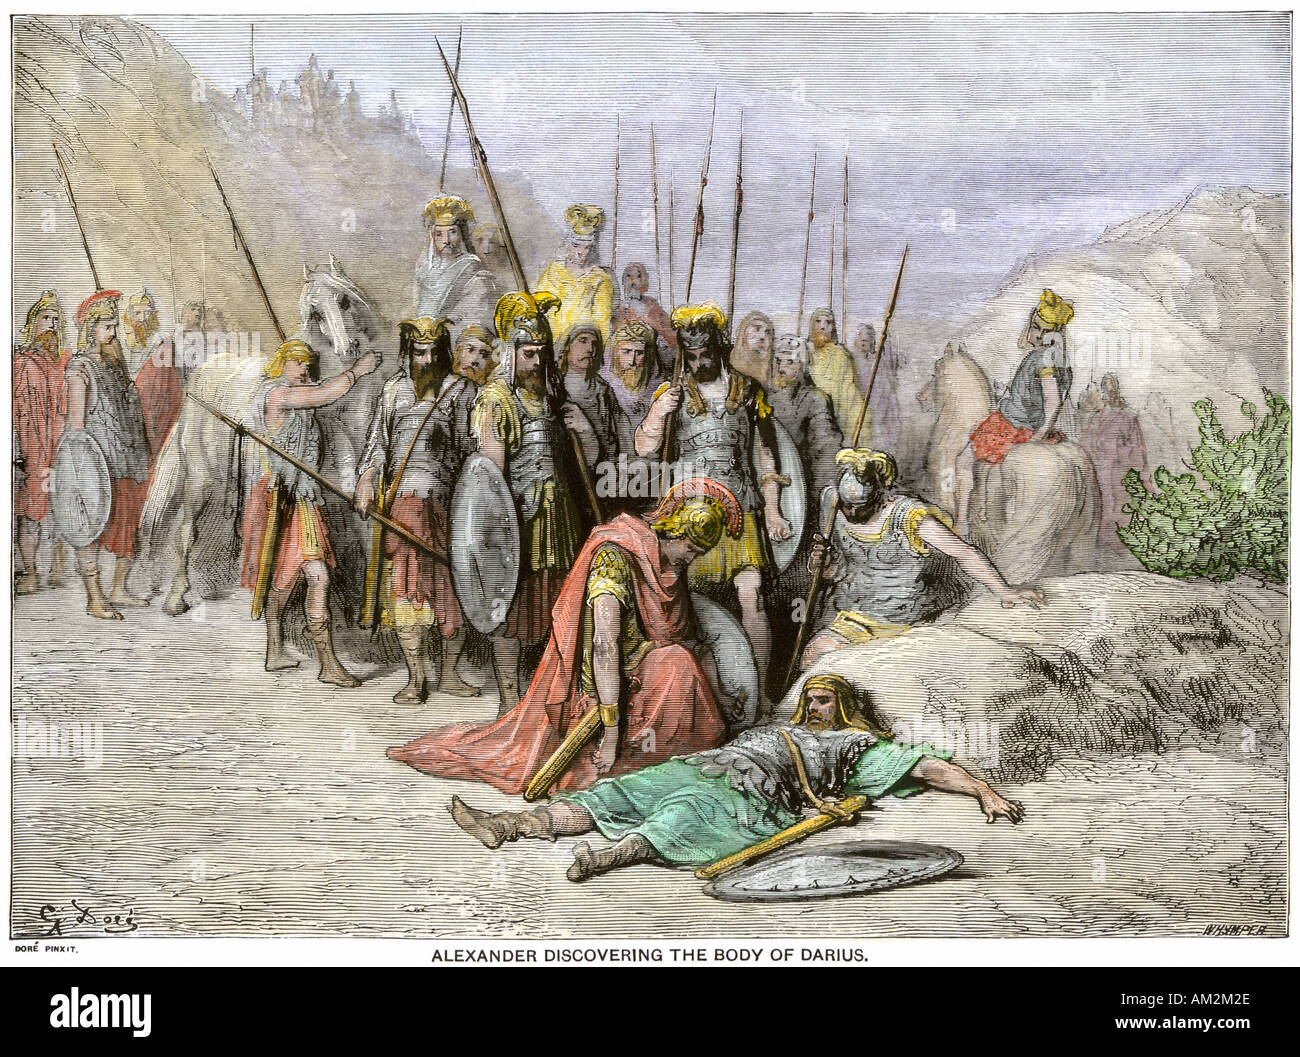 Alexander the Great discovering the body of Darius King of Persia 331 BC. Hand-colored woodcut of a Gustave Dore illustration - Stock Image